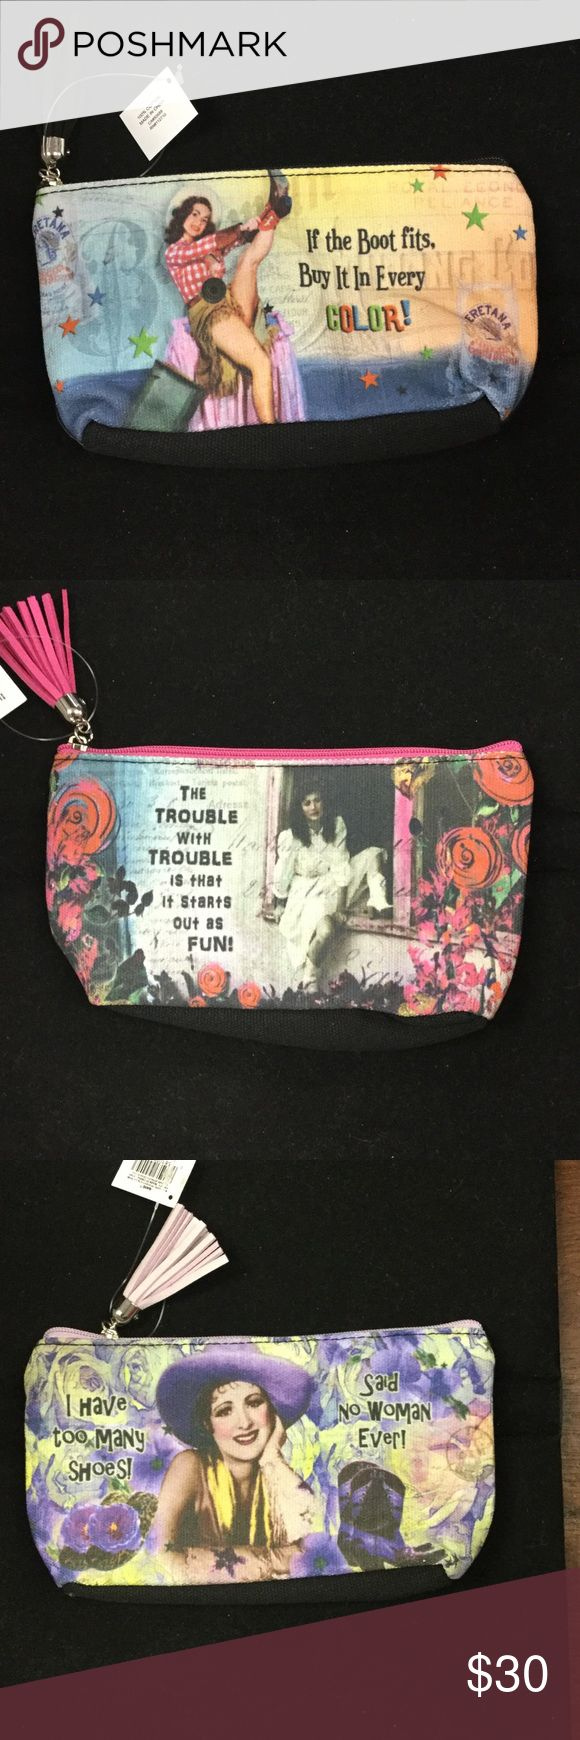 Vintage Sass Pouch These vintage pouches are sure to make you laugh with their hilarious sassy sayings and the vintage photos. *not free people brand, listed for exposure* Free People Bags Clutches & Wristlets